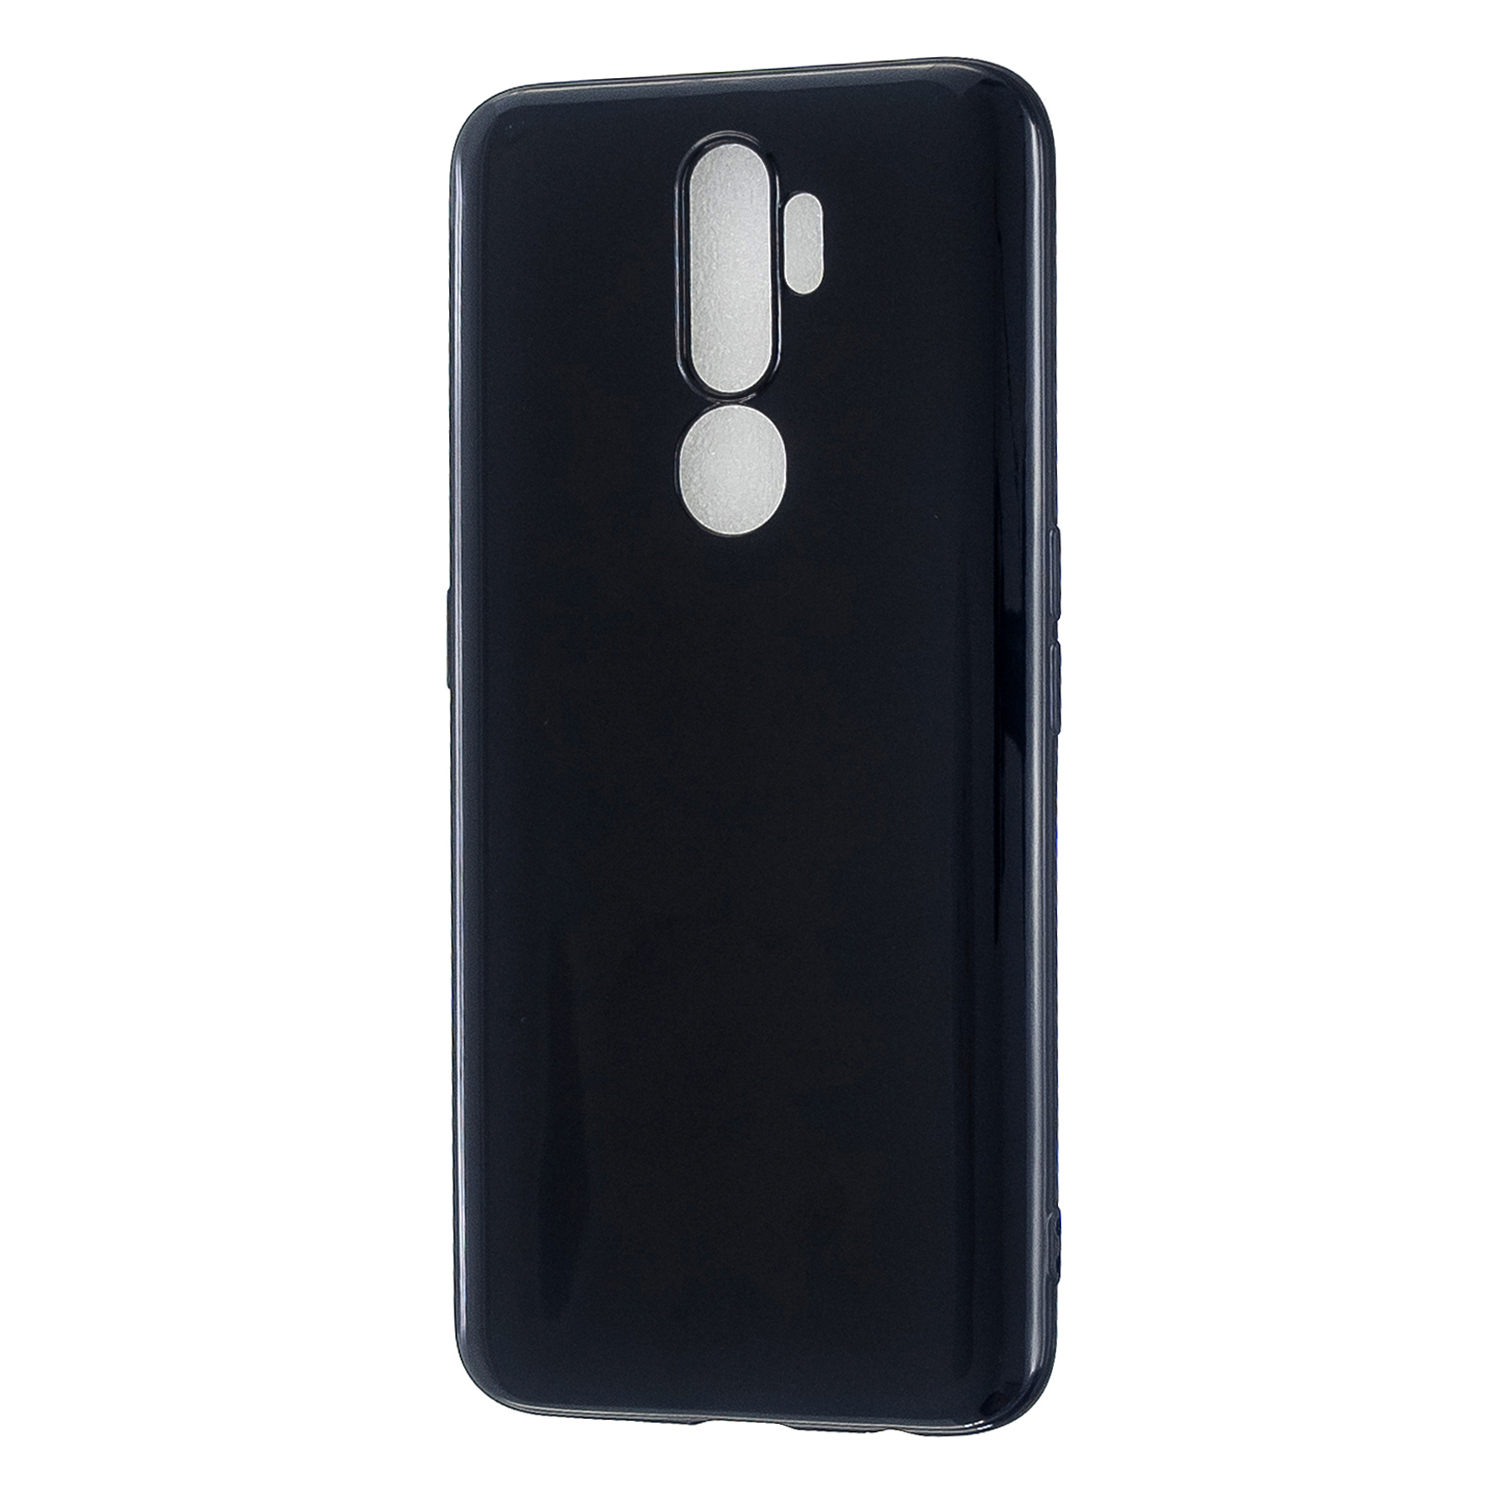 For OPPO A5/A3S/A9 2020 Cellphone Cover Soft Touch Anti-scratch Shockproof TPU Mobile Phone Case  Bright black